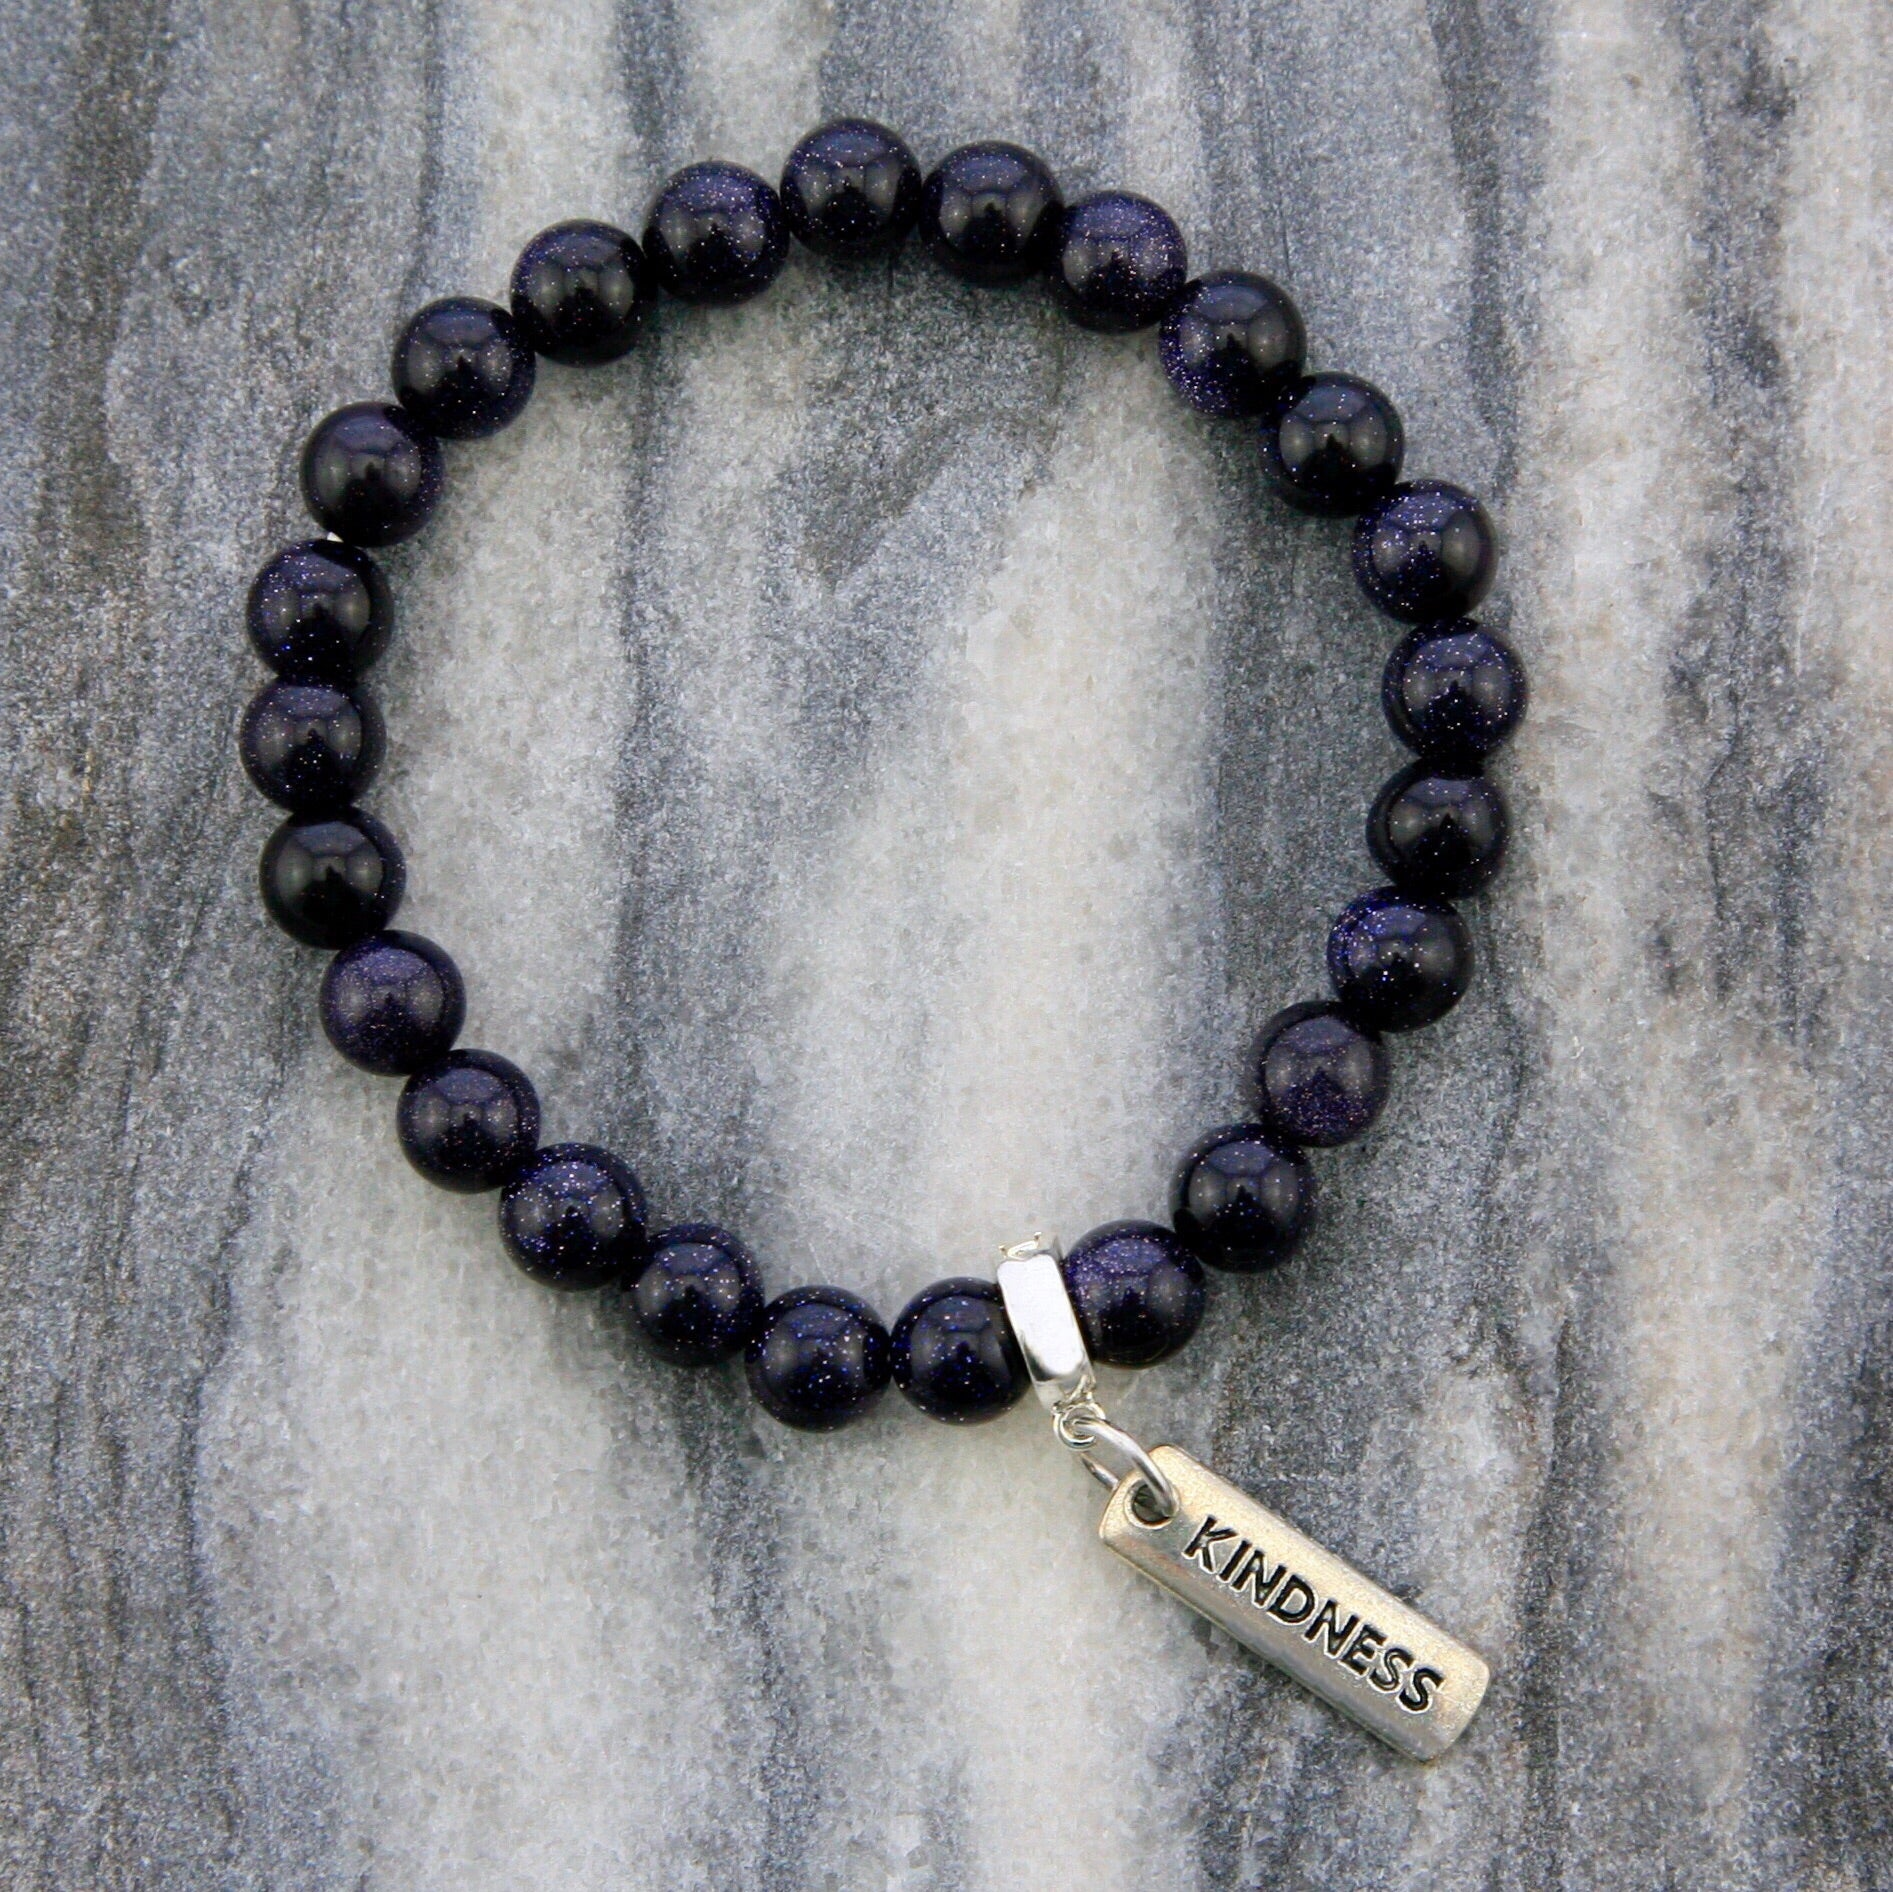 Stone Bracelet - Midnight Blue Sparkle 8mm beads - with Word charm